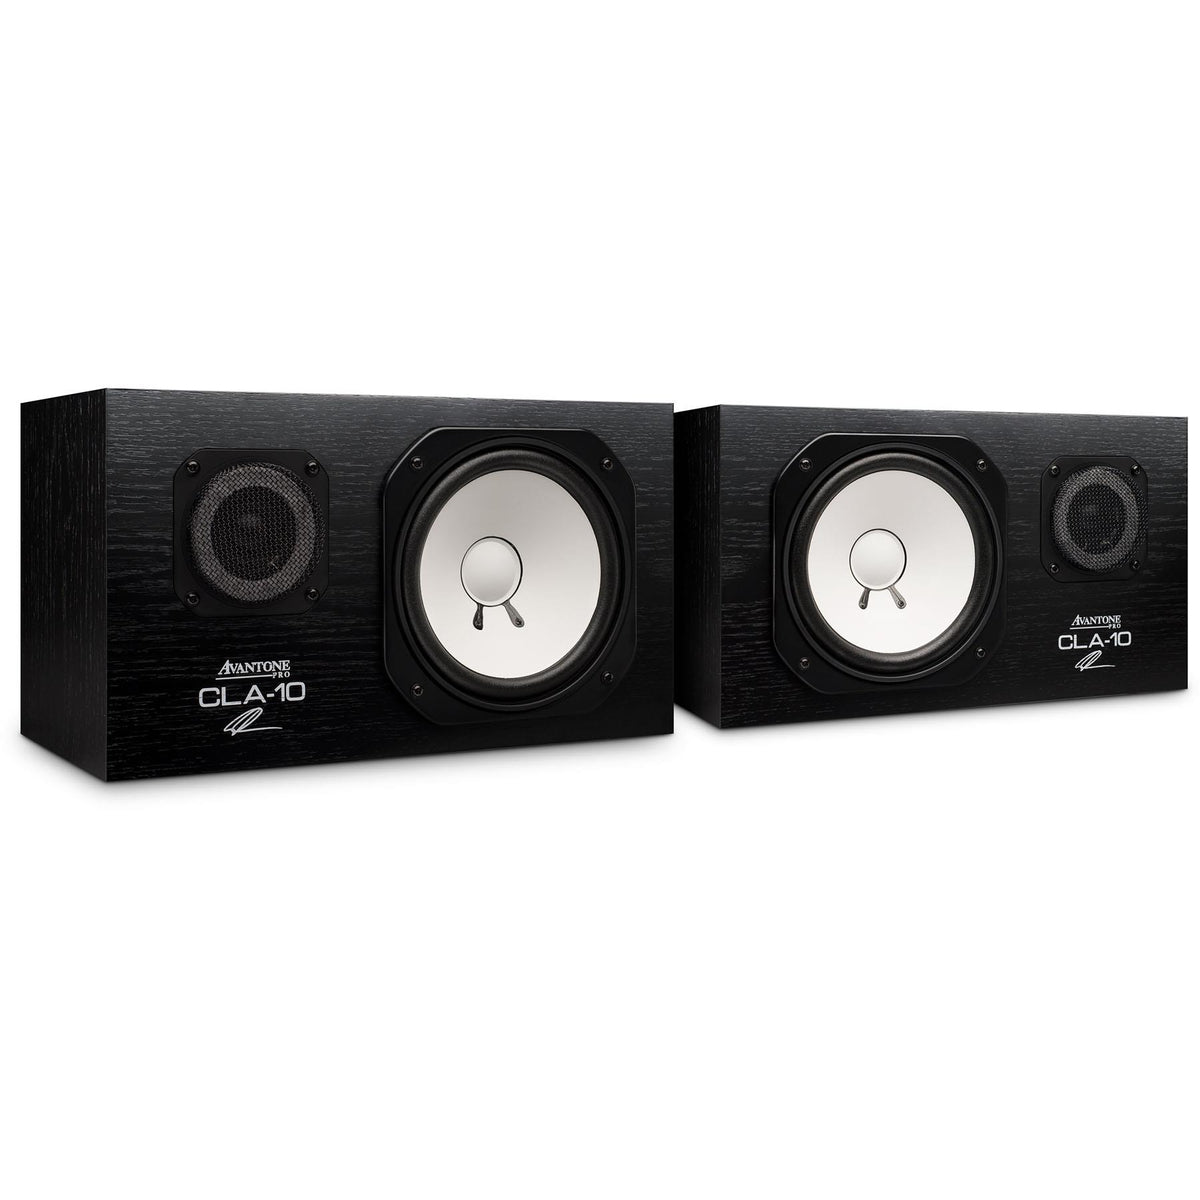 Avantone CLA-10 Passive Studio Monitor Pair Bundle with Monitor Pads